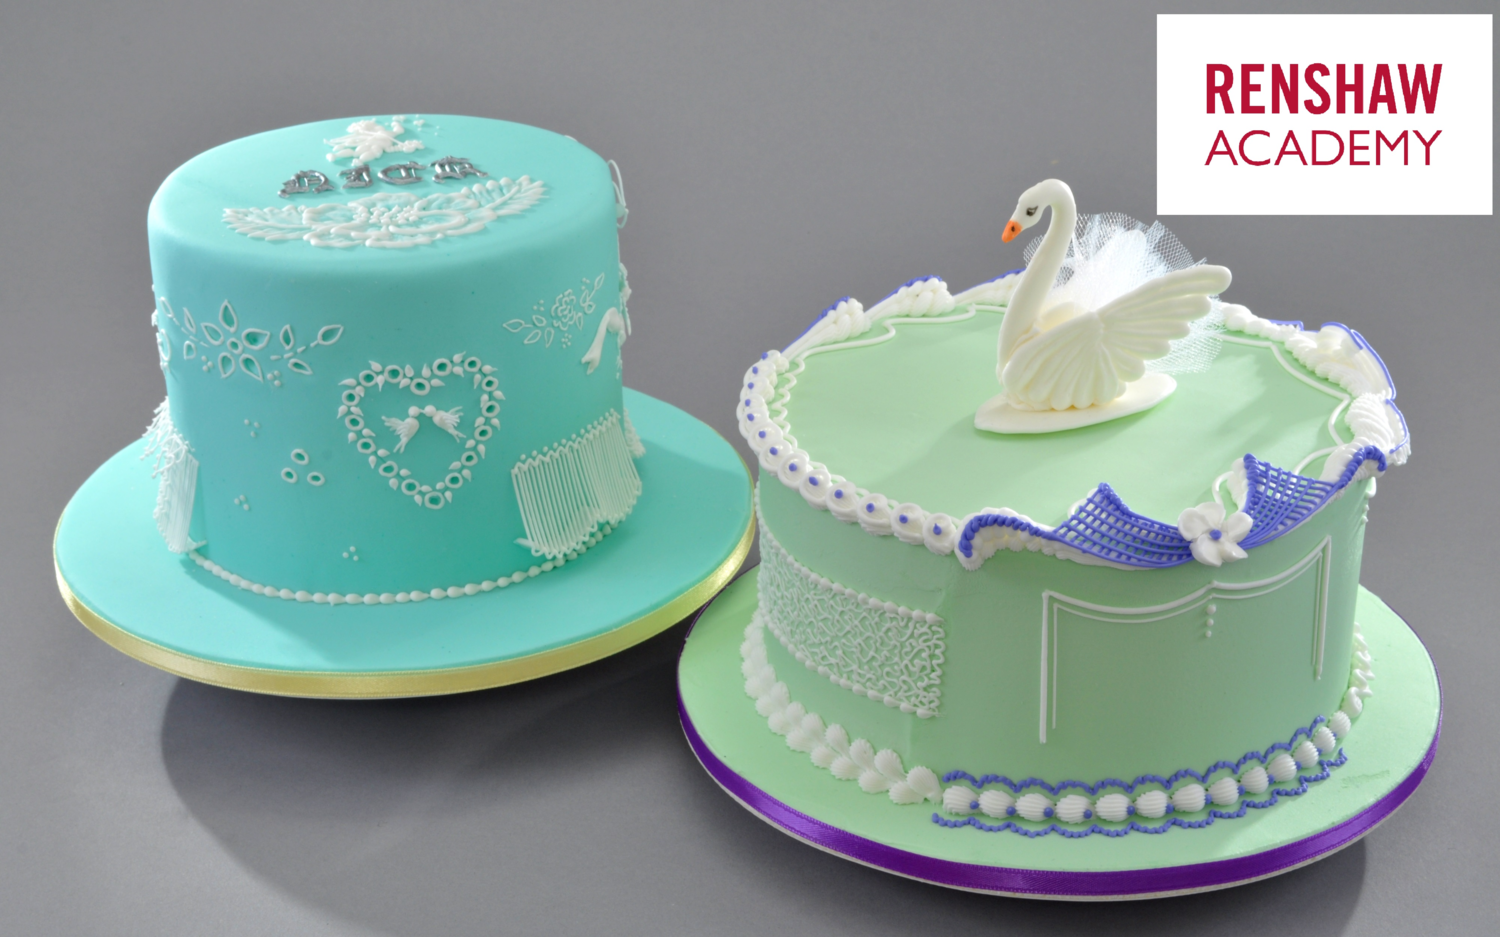 Only 3 Seats! RENSHAW ACADEMY CERTIFICATION, Module 3; ROYAL ICING  JUNE 24-26, 2019 at TSCS